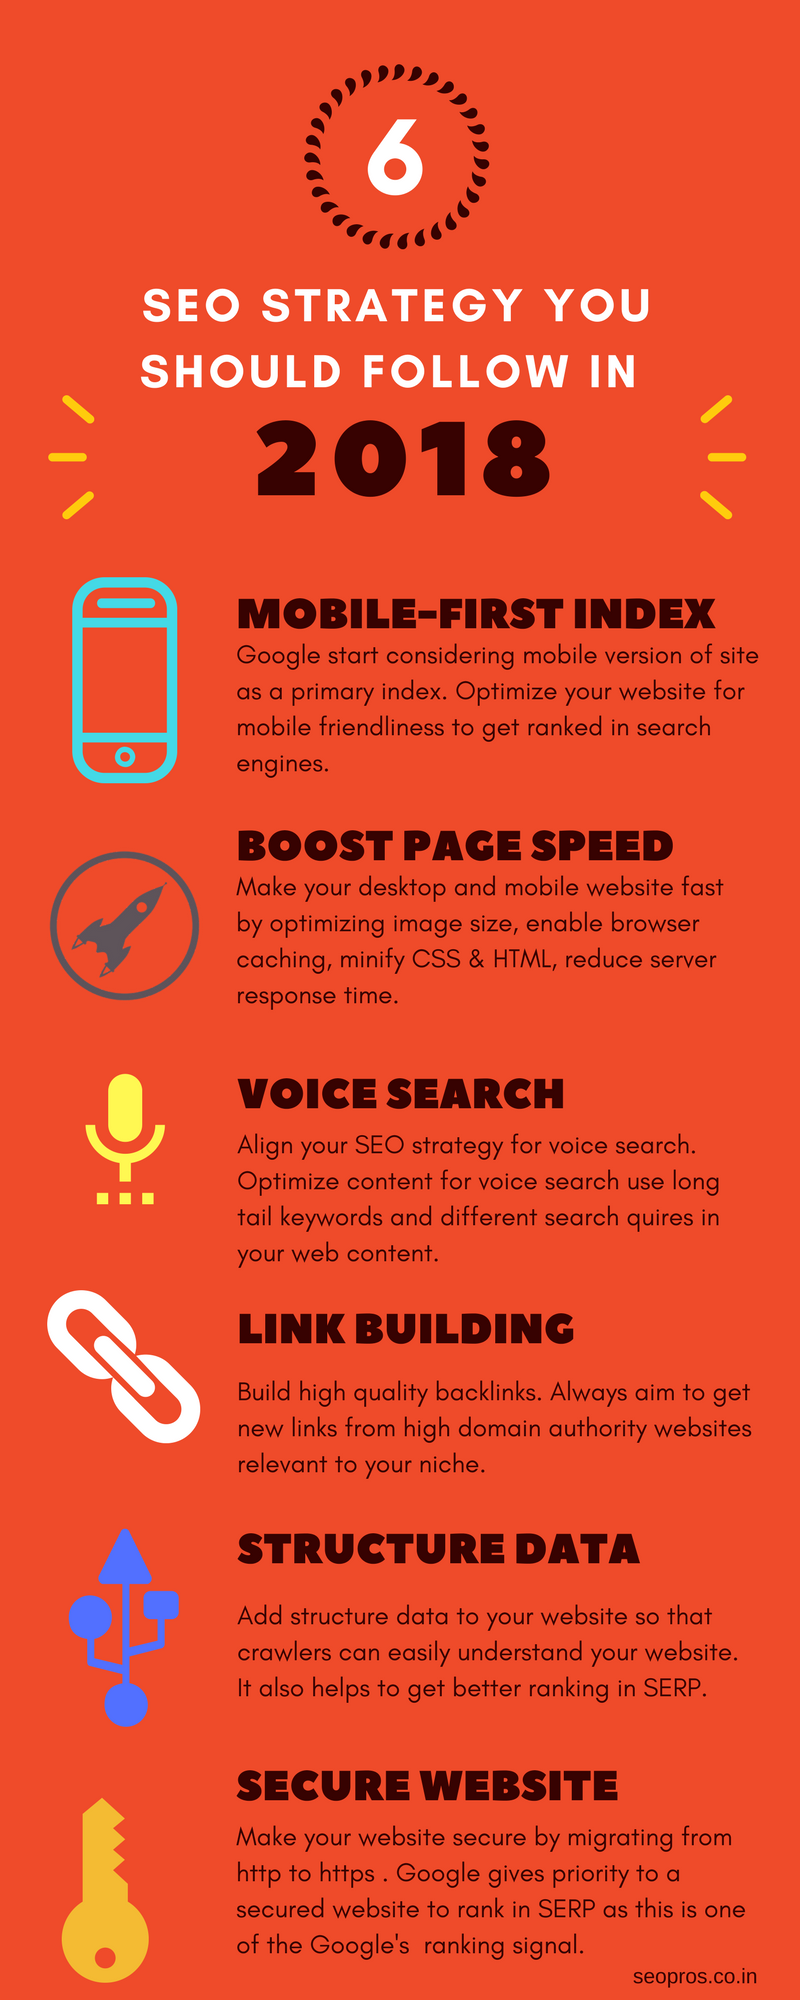 SEO_Strategy_for_2018